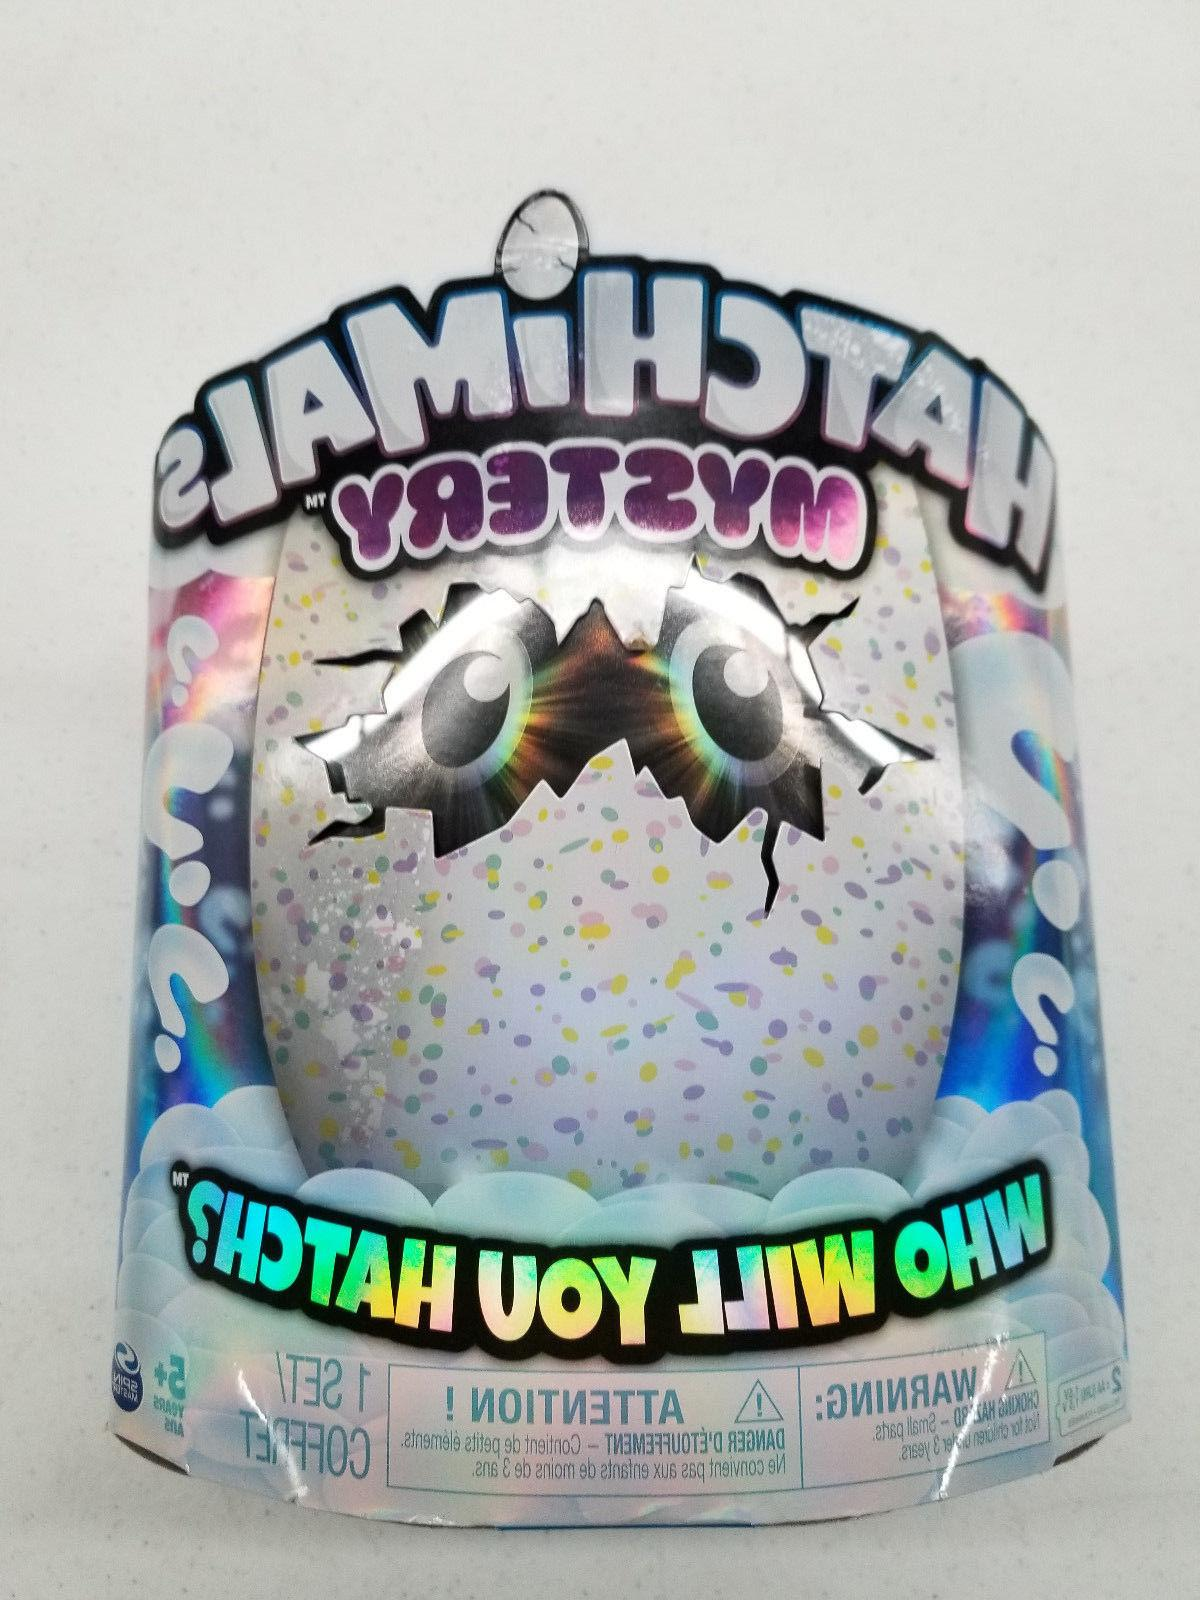 mystery interactive toy creature egg who will